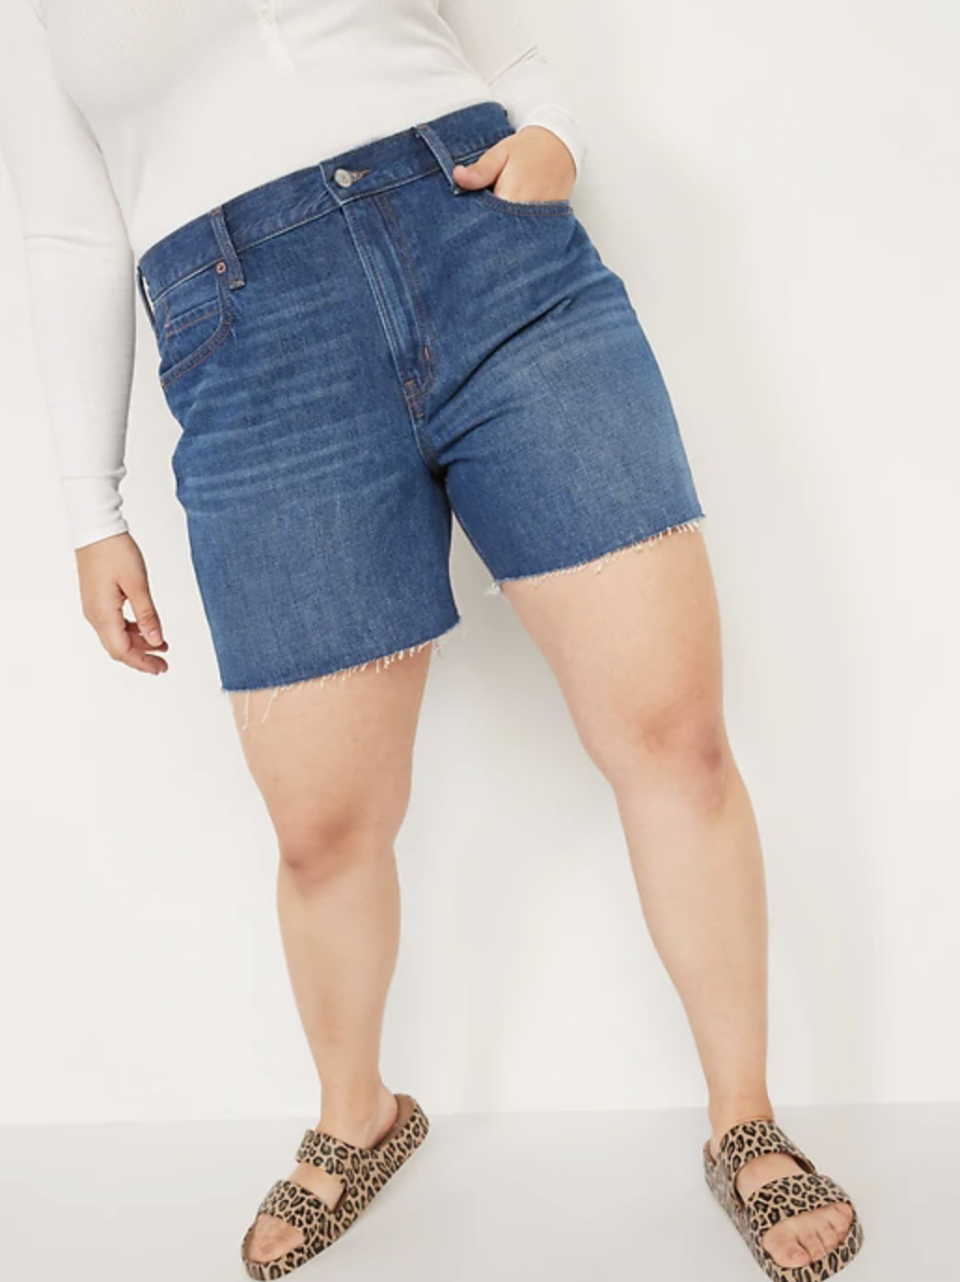 High-Waisted Slouchy Cut-Off Jean Shorts (Photo via Old Navy)